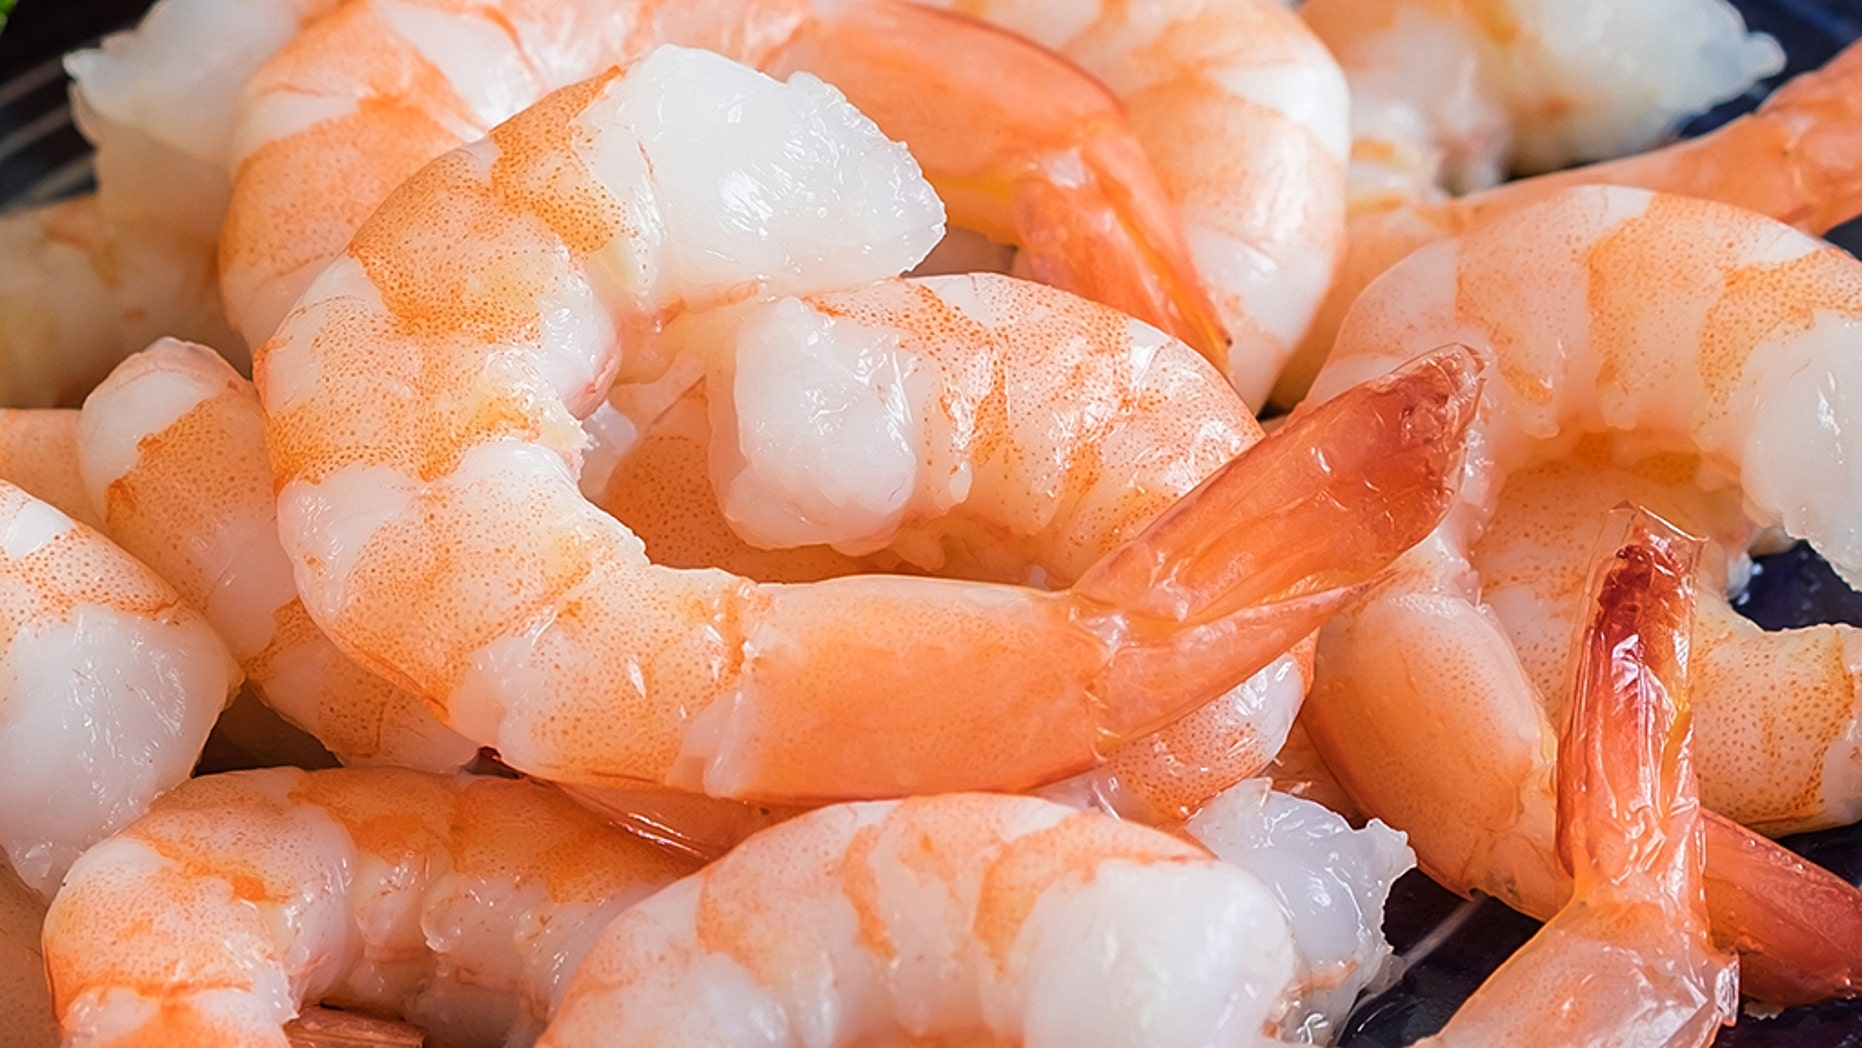 Those who eat raw or under-cooked seafood could develop a foodborne illness